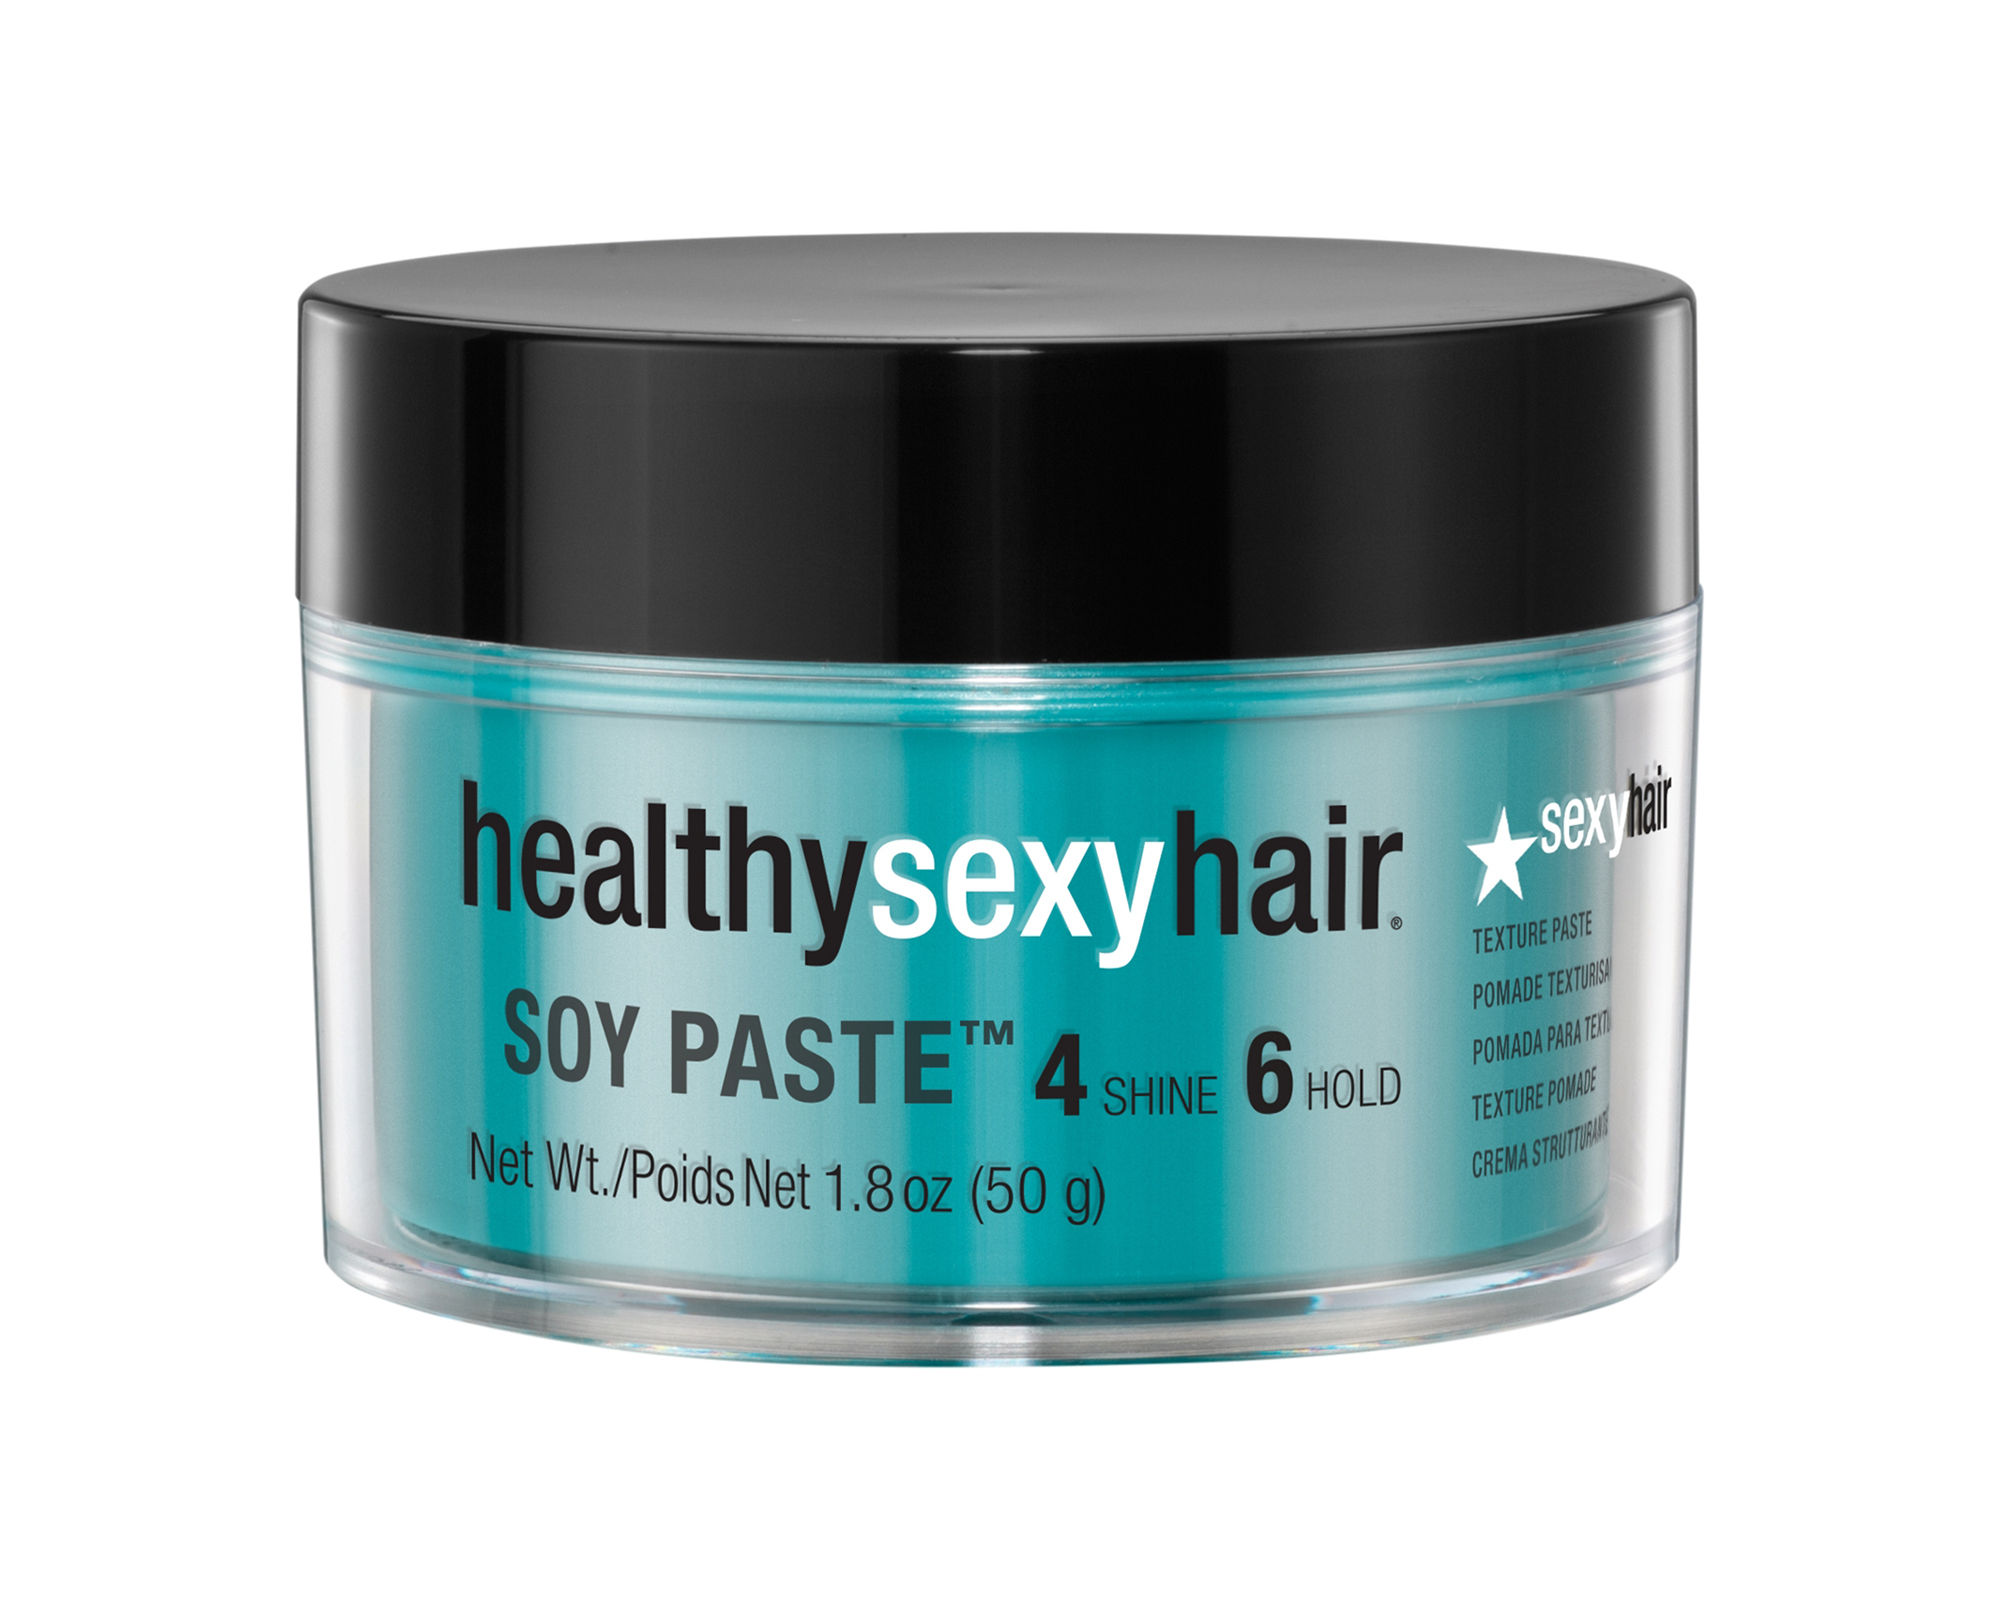 SEXY HAIR Healthy Sexy Hair Soy Paste 50ml